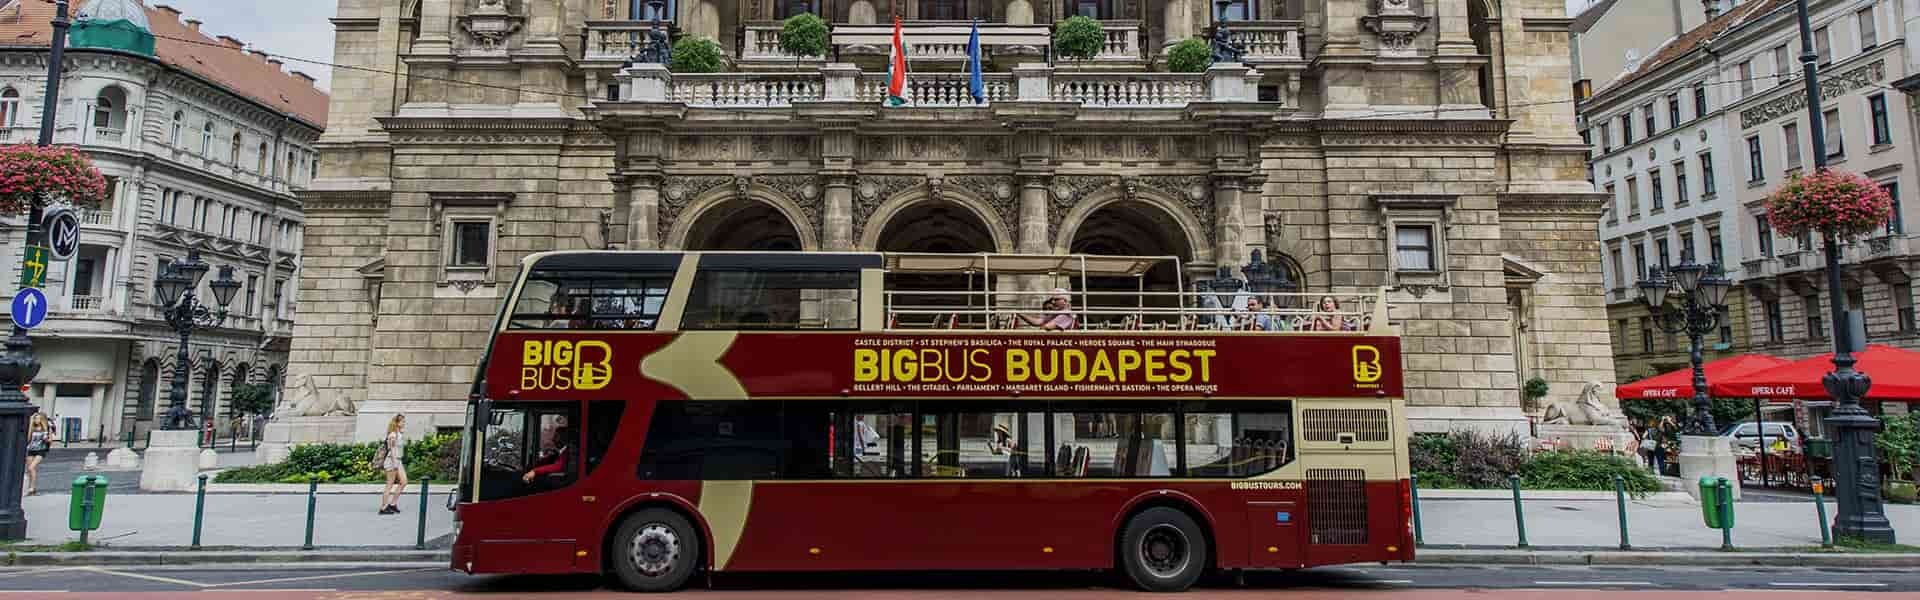 Hop-On Hop-Off Budapest Traveler's Guide: Is It a Worthy Commute?